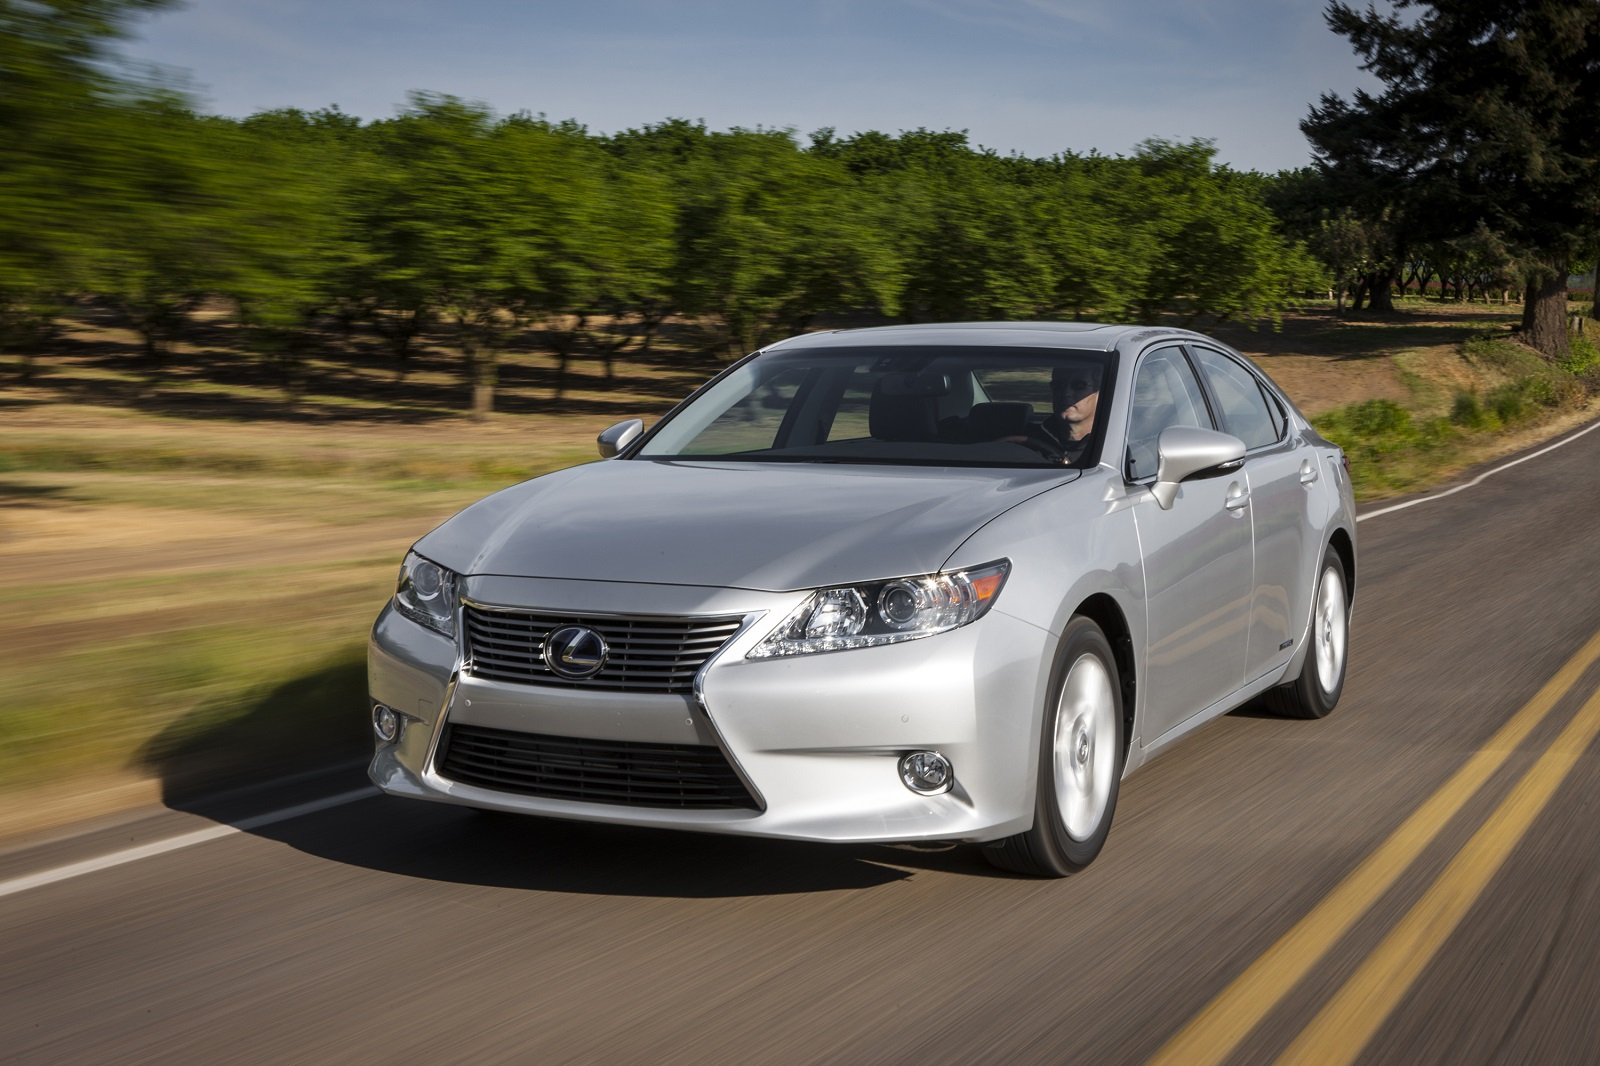 2015 lexus es 300h hybrid gets new infotainment features. Black Bedroom Furniture Sets. Home Design Ideas